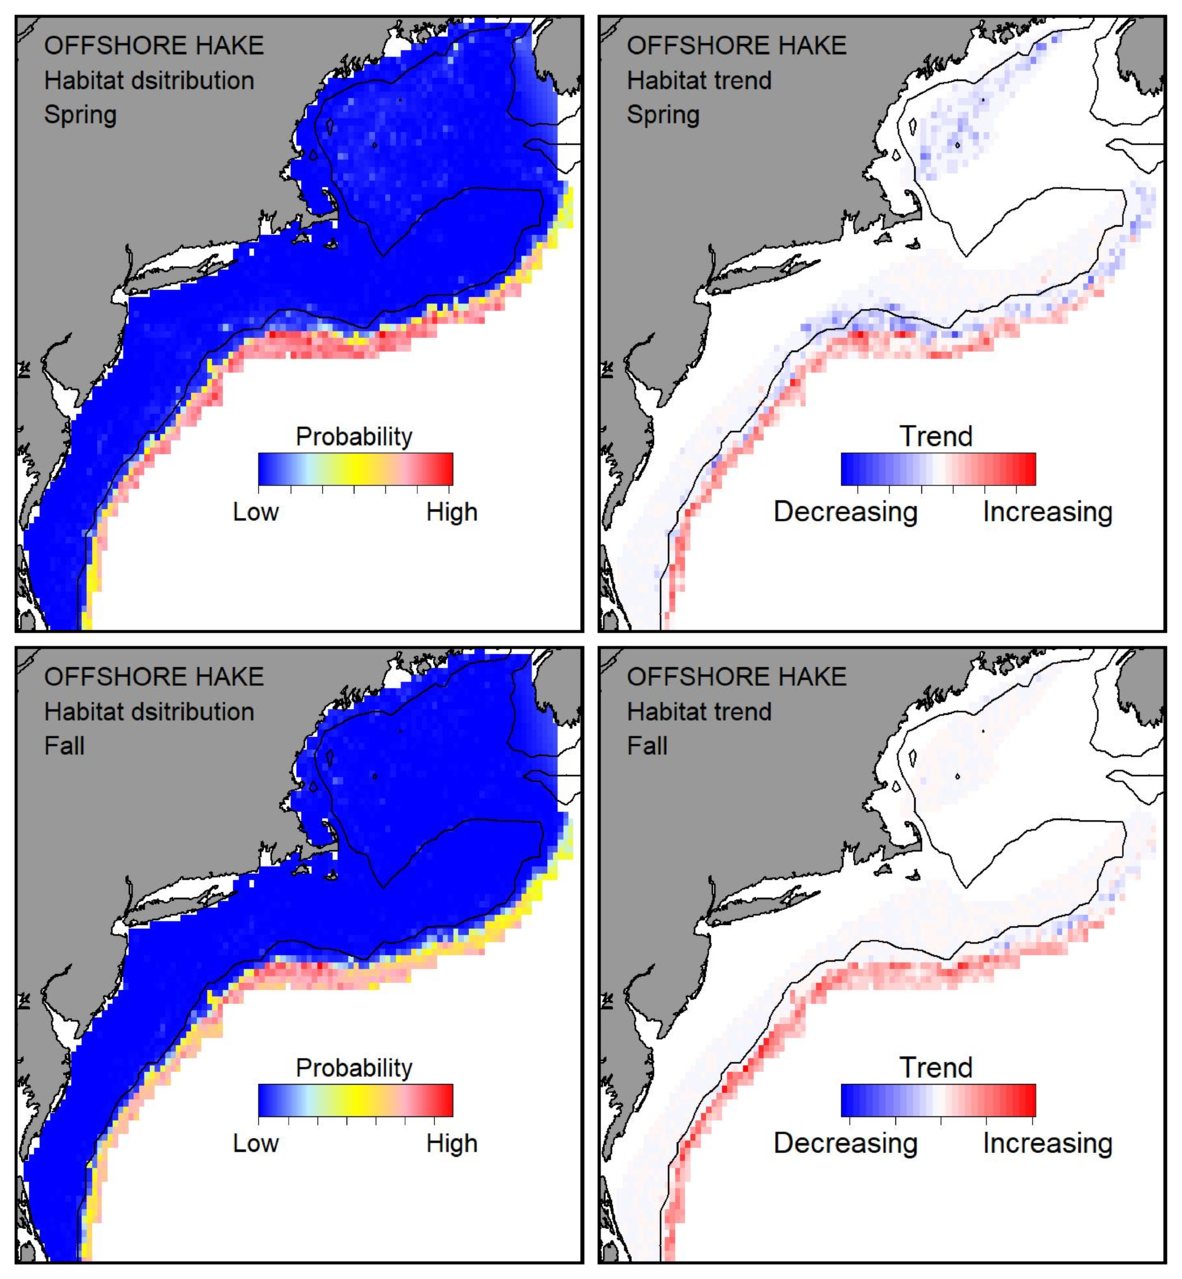 Top row: Probable habitat distribution for offshore hake showing the highest concentration and increasing trend in the Gulf of Maine during the spring. Bottom row: Probable habitat distribution for offshore hake showing the highest concentration and increasing trend in the Gulf of Maine during the fall.